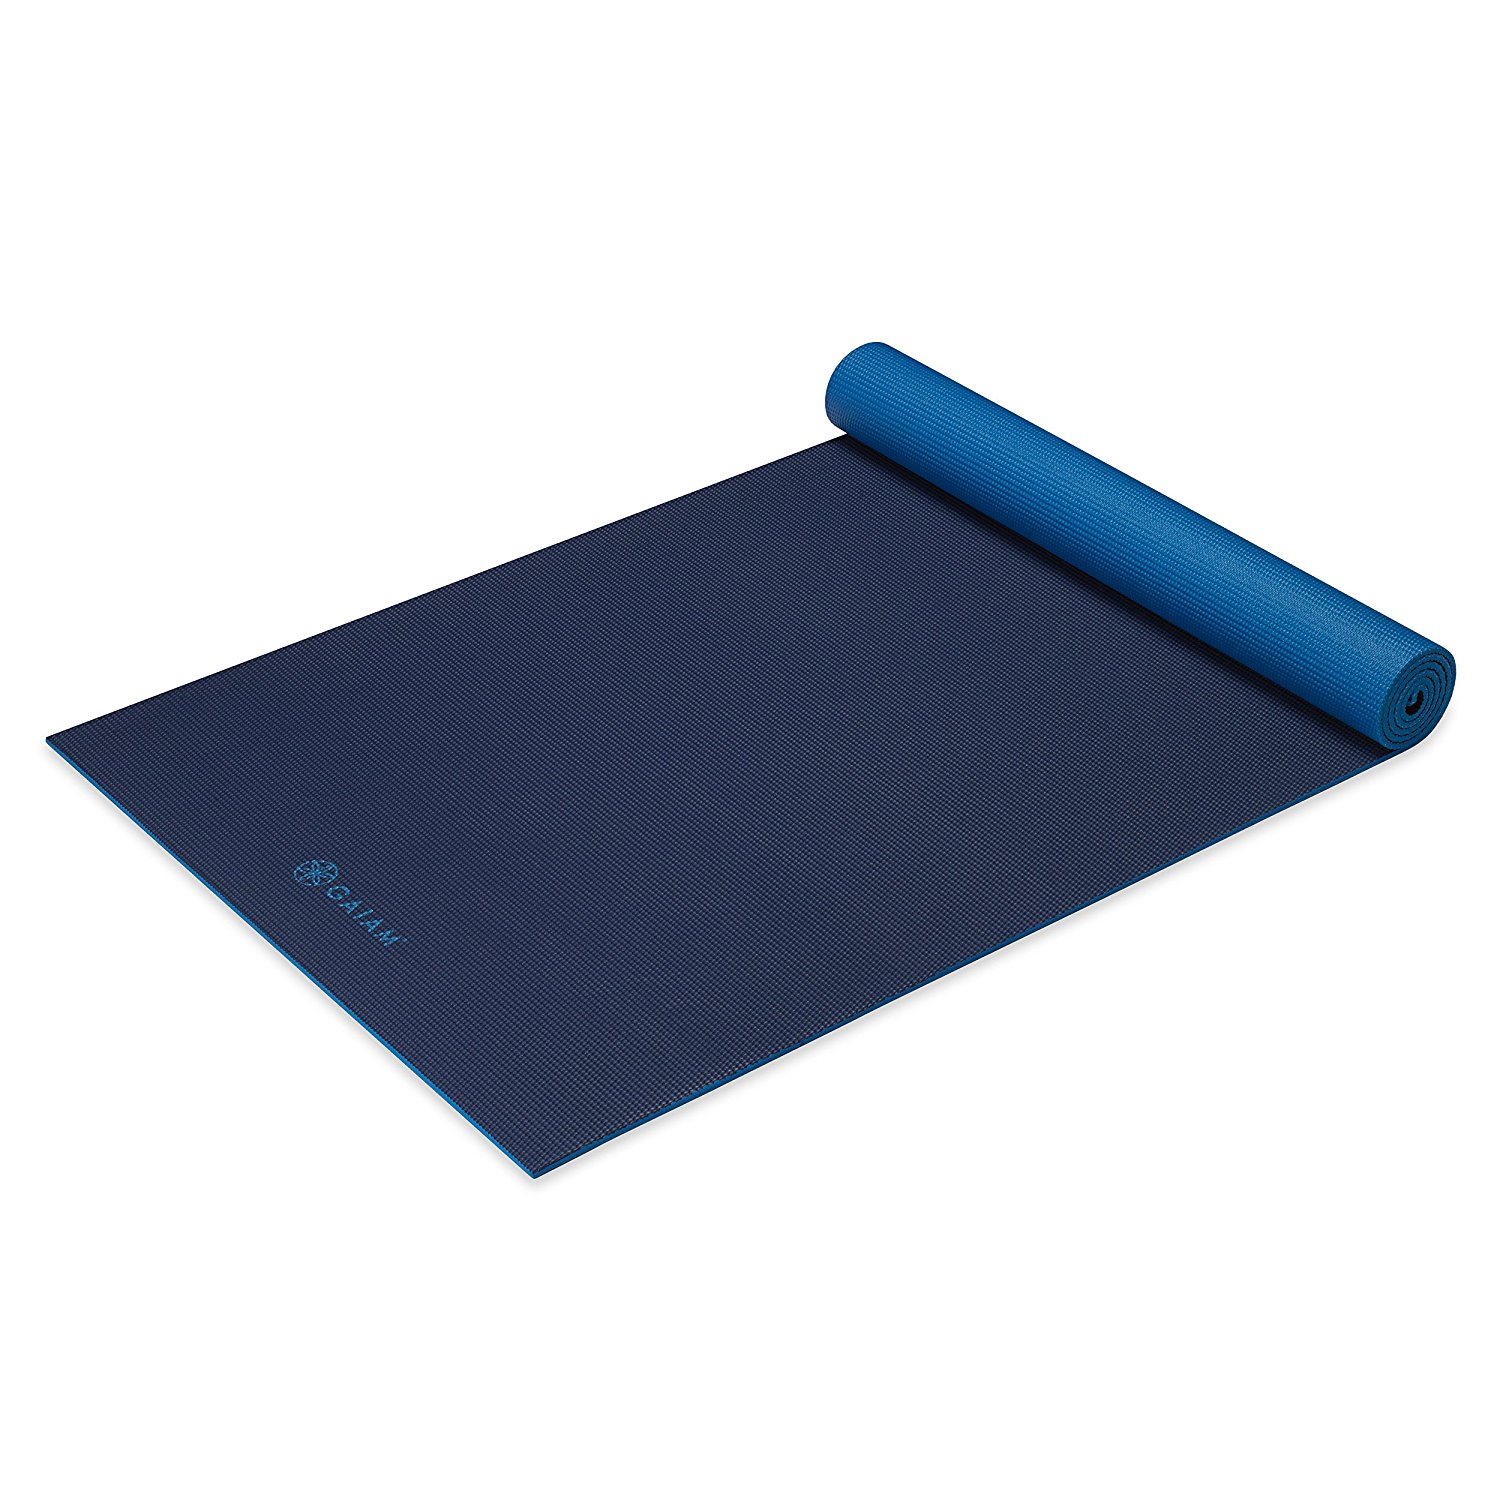 gaiam solid non-slip yoga mat, navy/blue,6mm